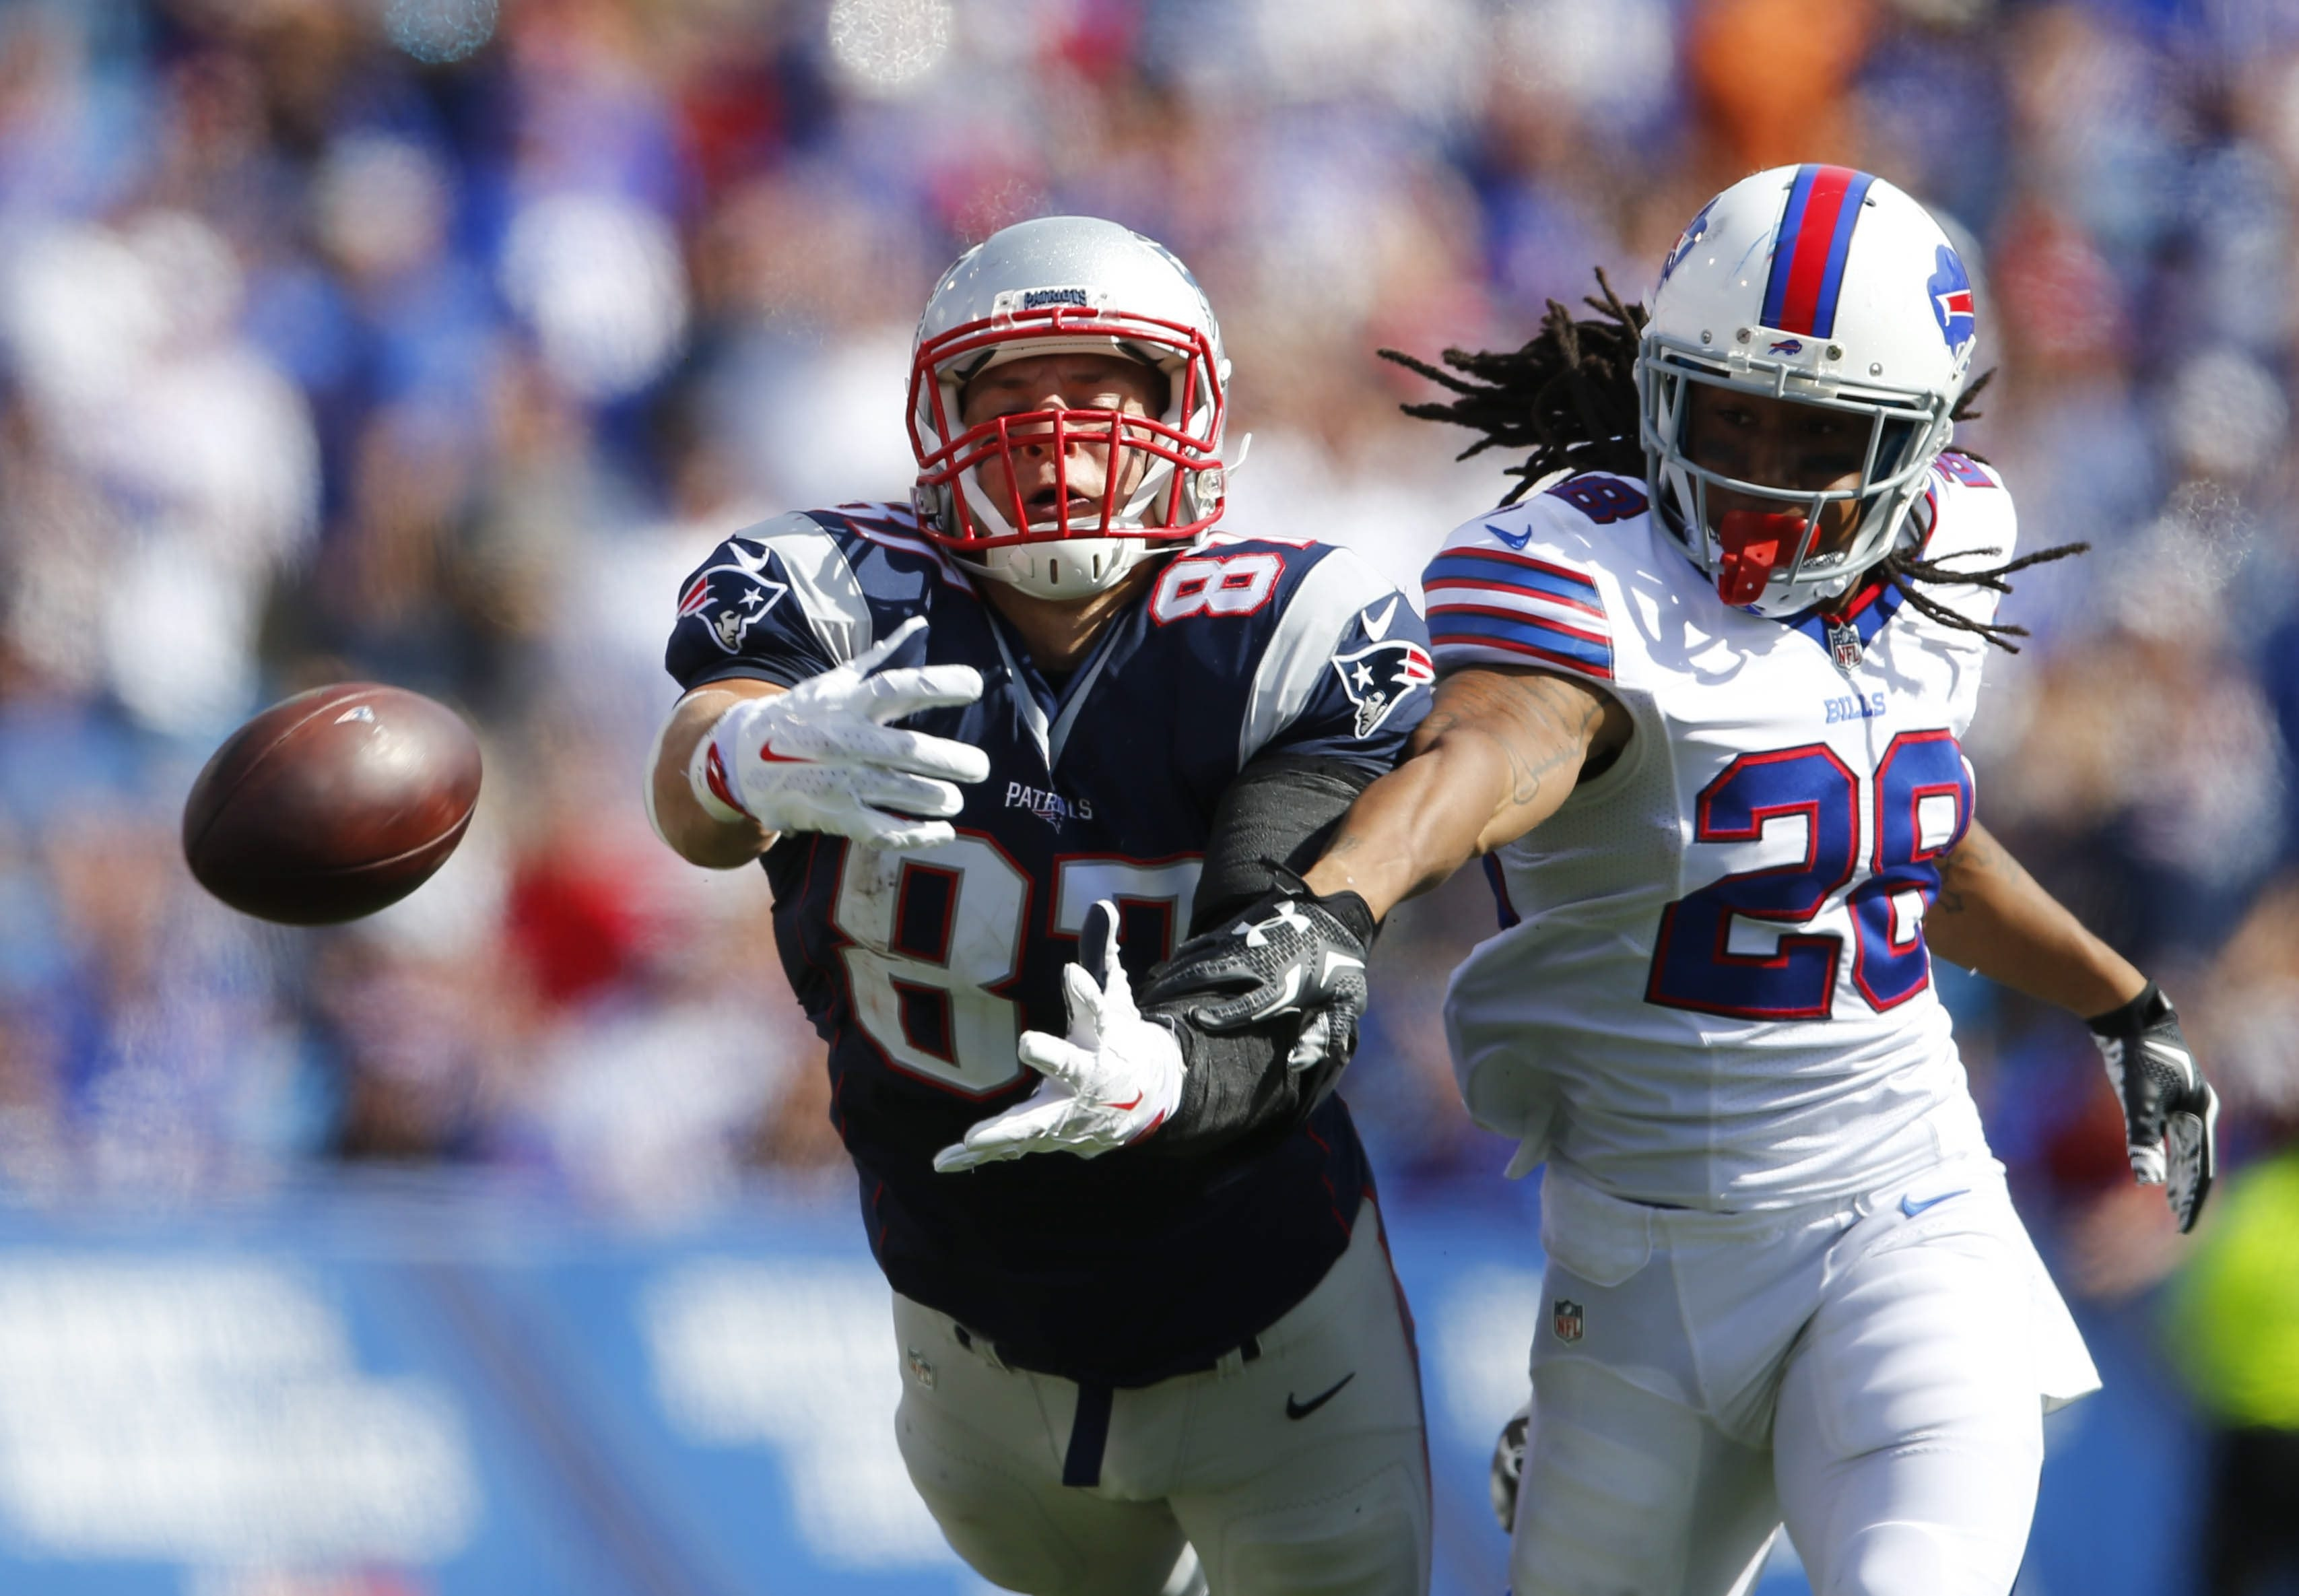 The biggest star of the defense turned out to be rookie cornerback Ronald Darby, who Pro Football Focus ranked fourth overall at his position.